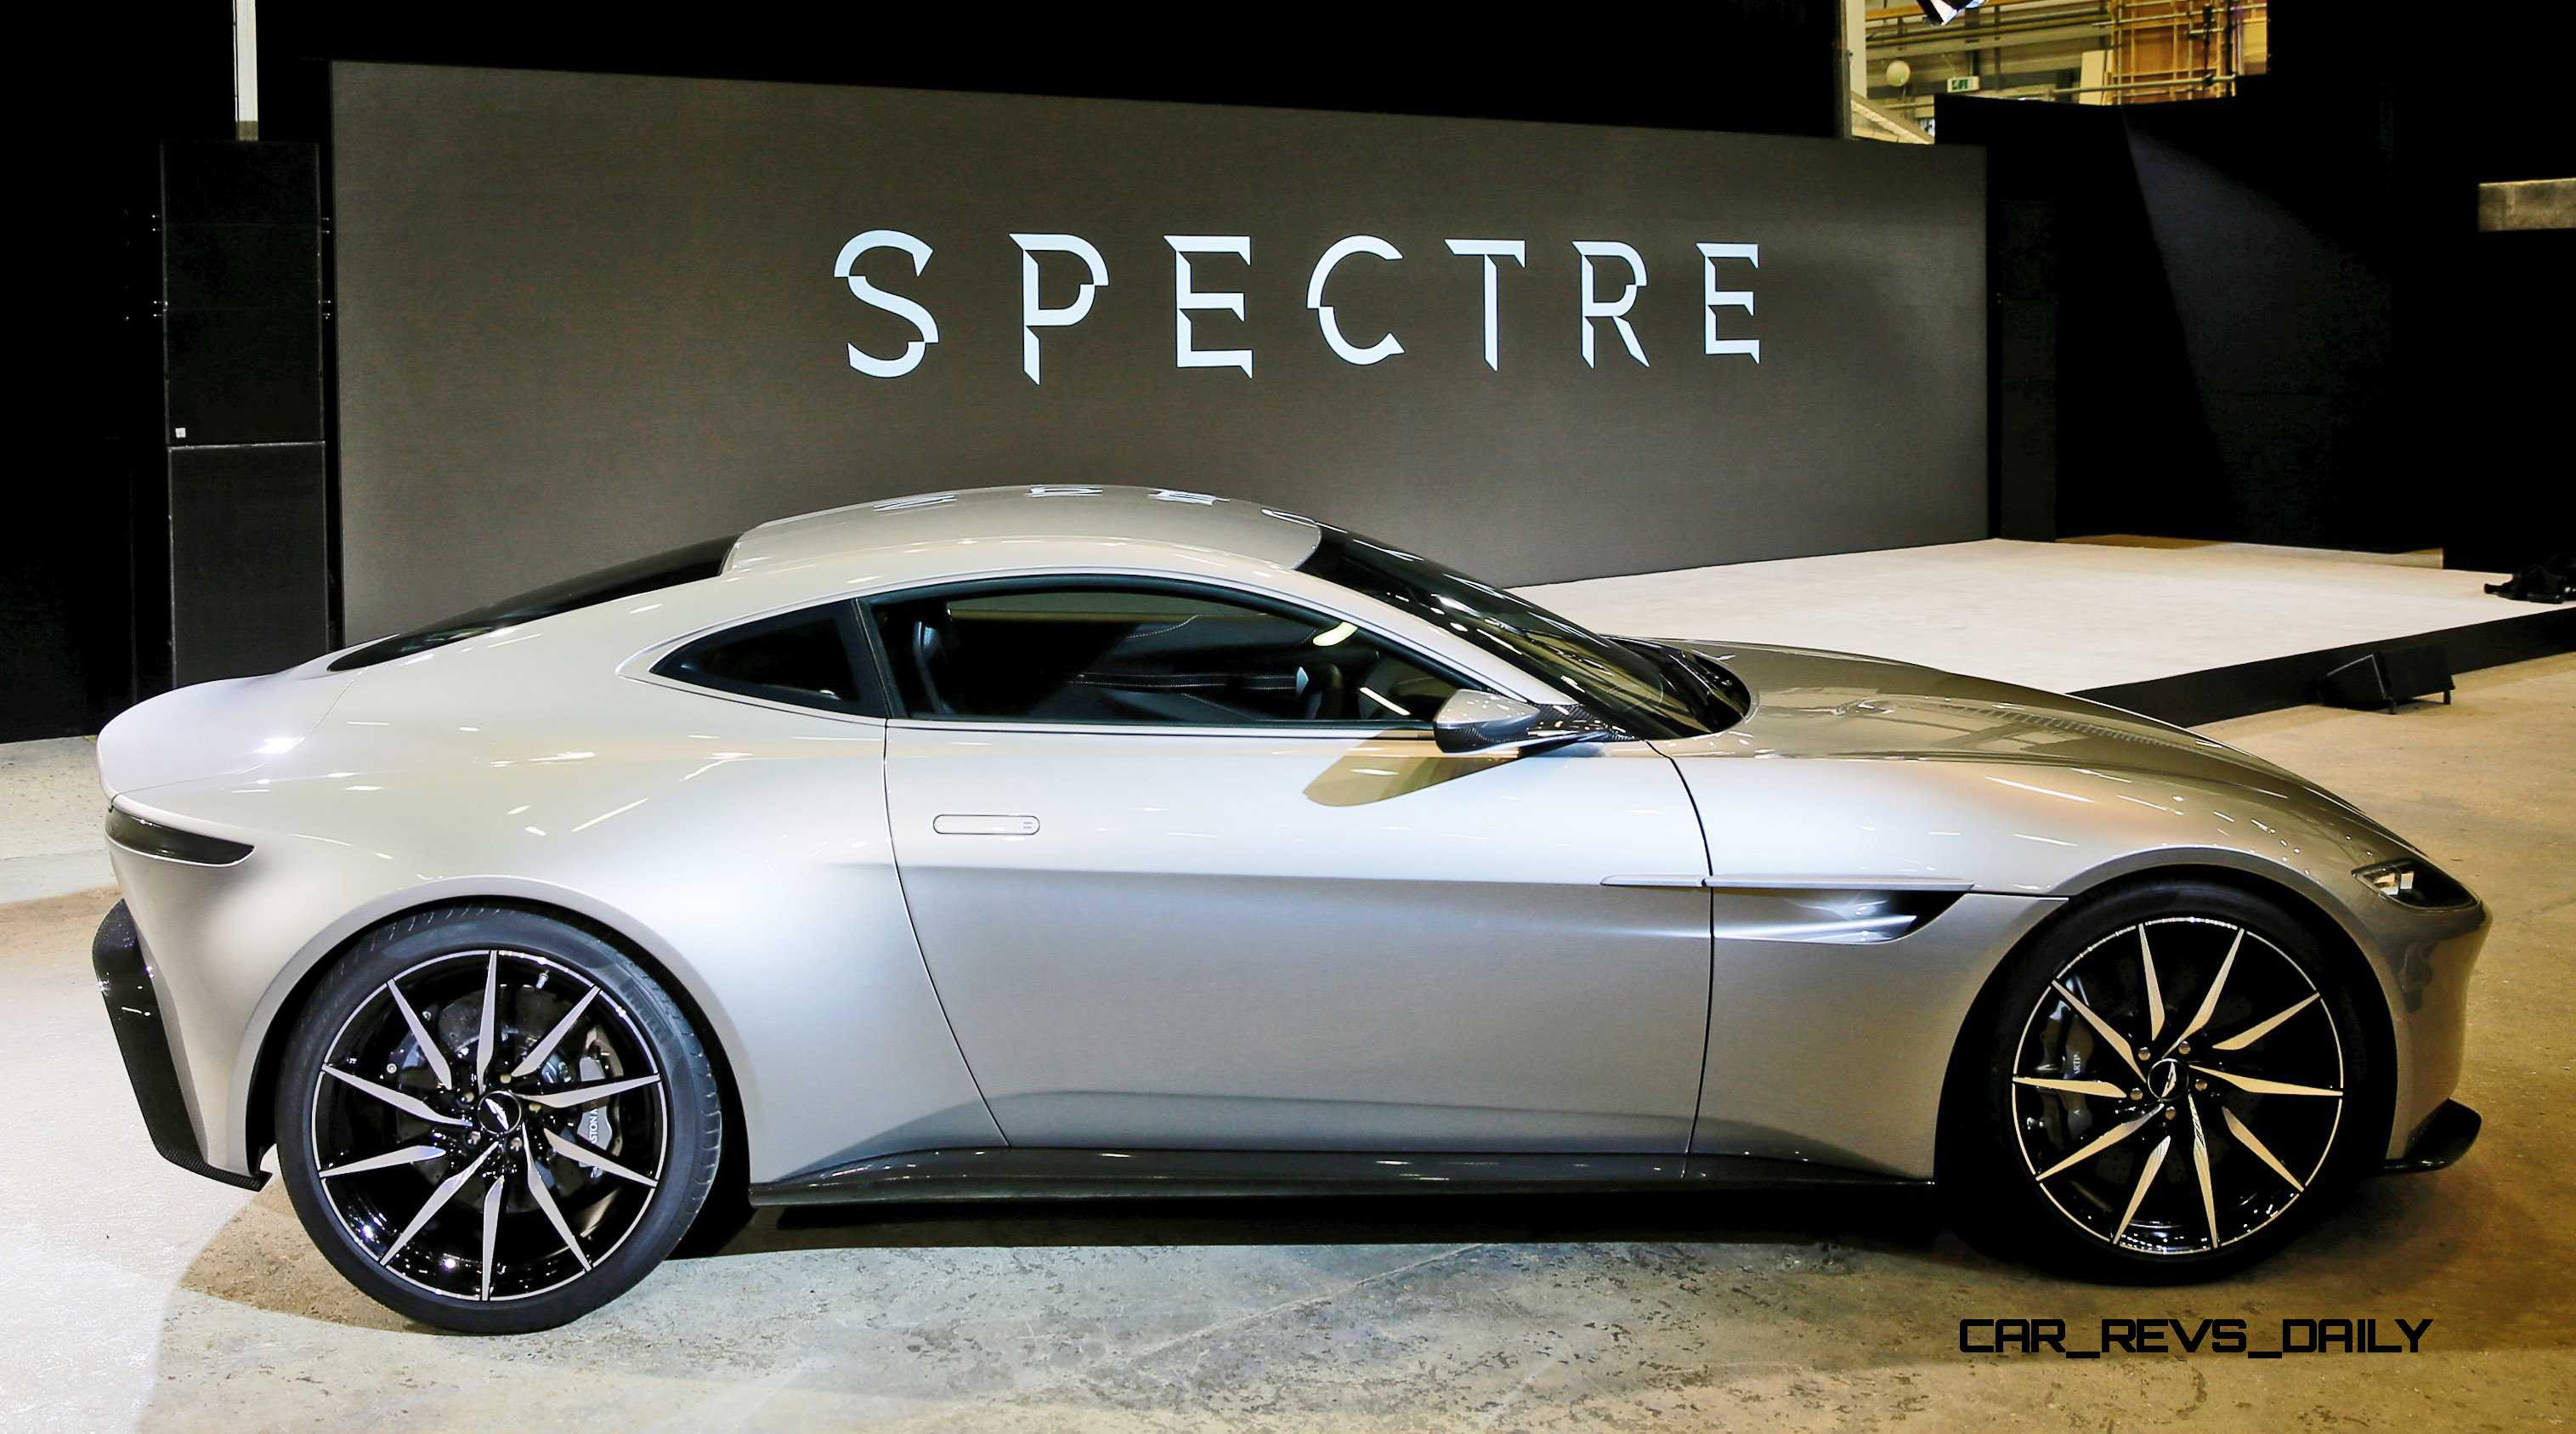 An Aston Martin Db10 Car Is Seen During Event To Mark The Sta